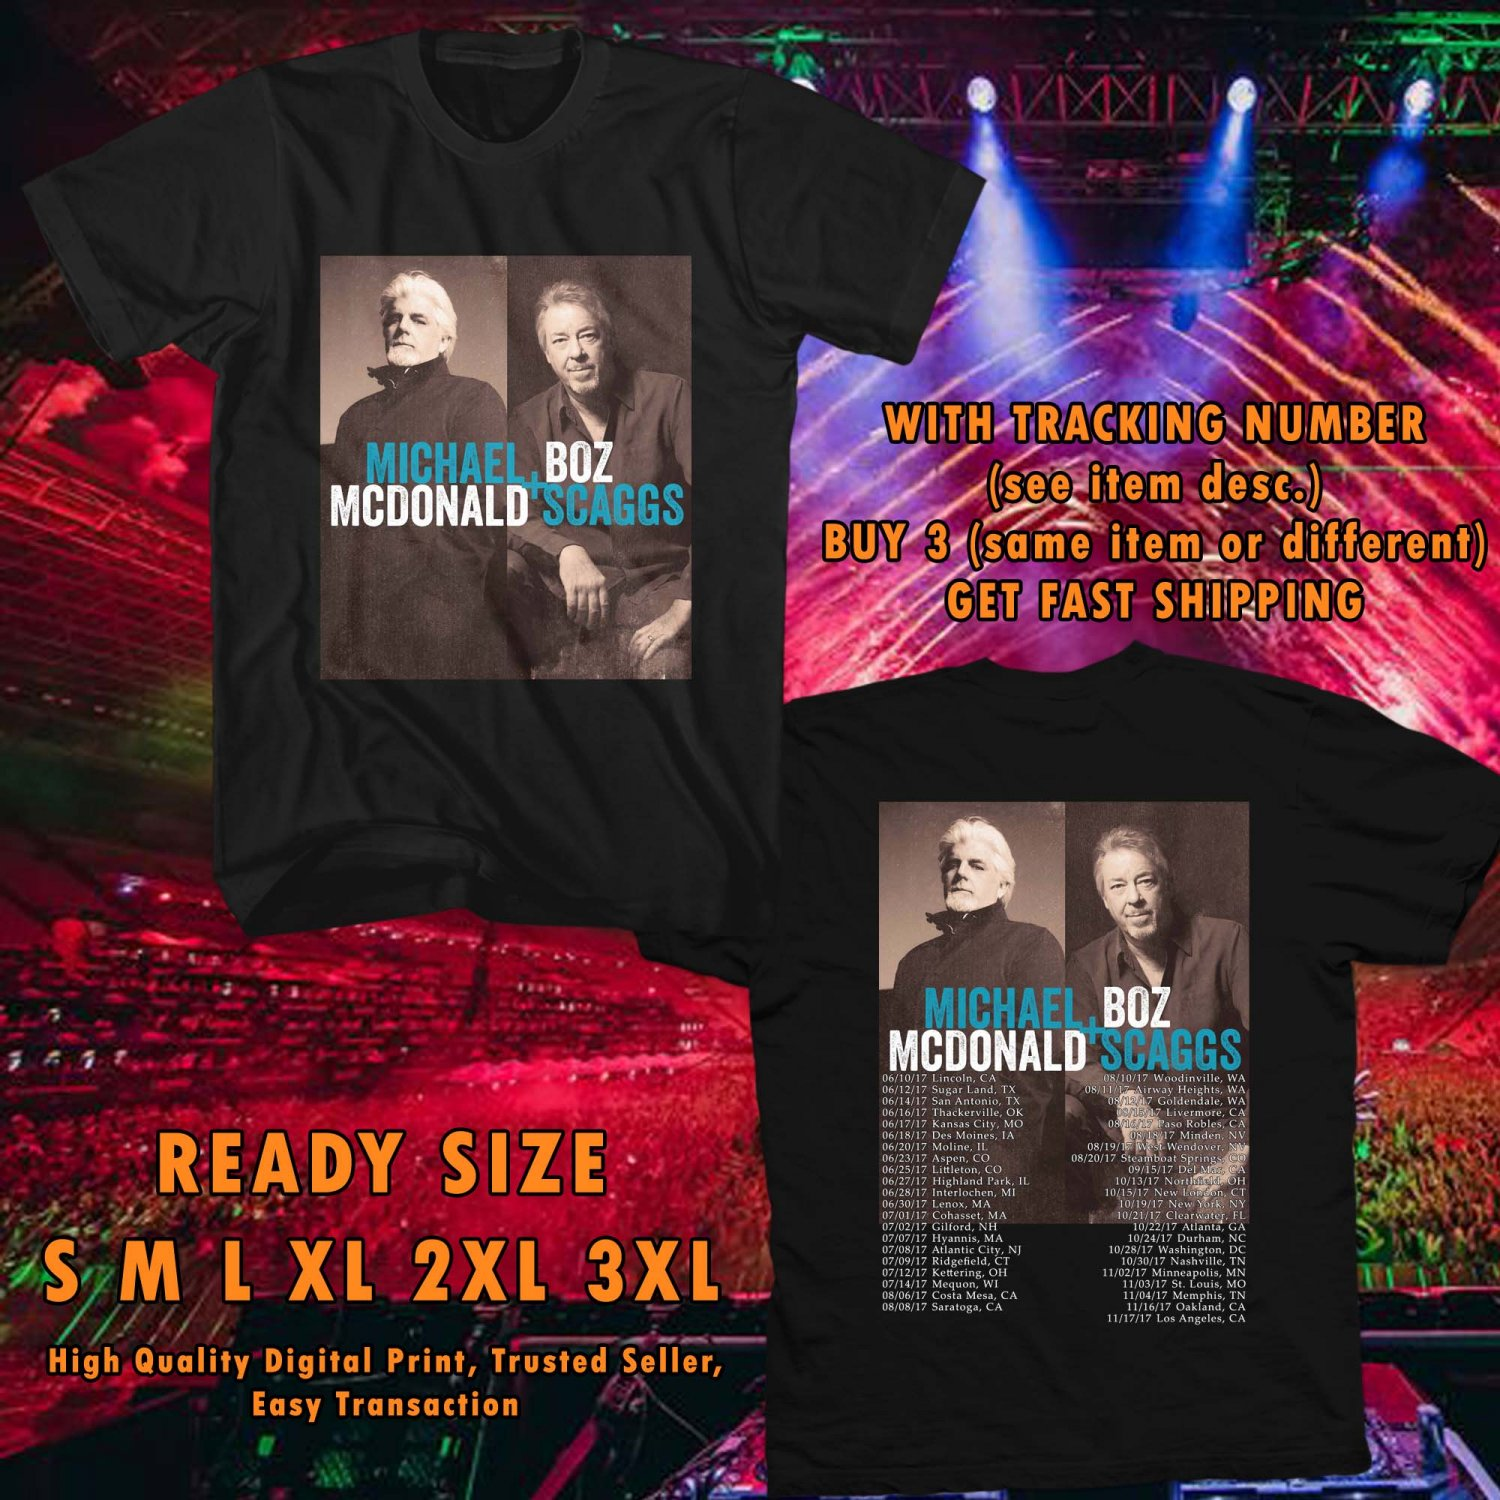 HITS MICHAEL McDONALD & BOZZ SCAGGS TOUR 2017 BLACK TEE'S 2SIDE MAN WOMEN ASTR 887